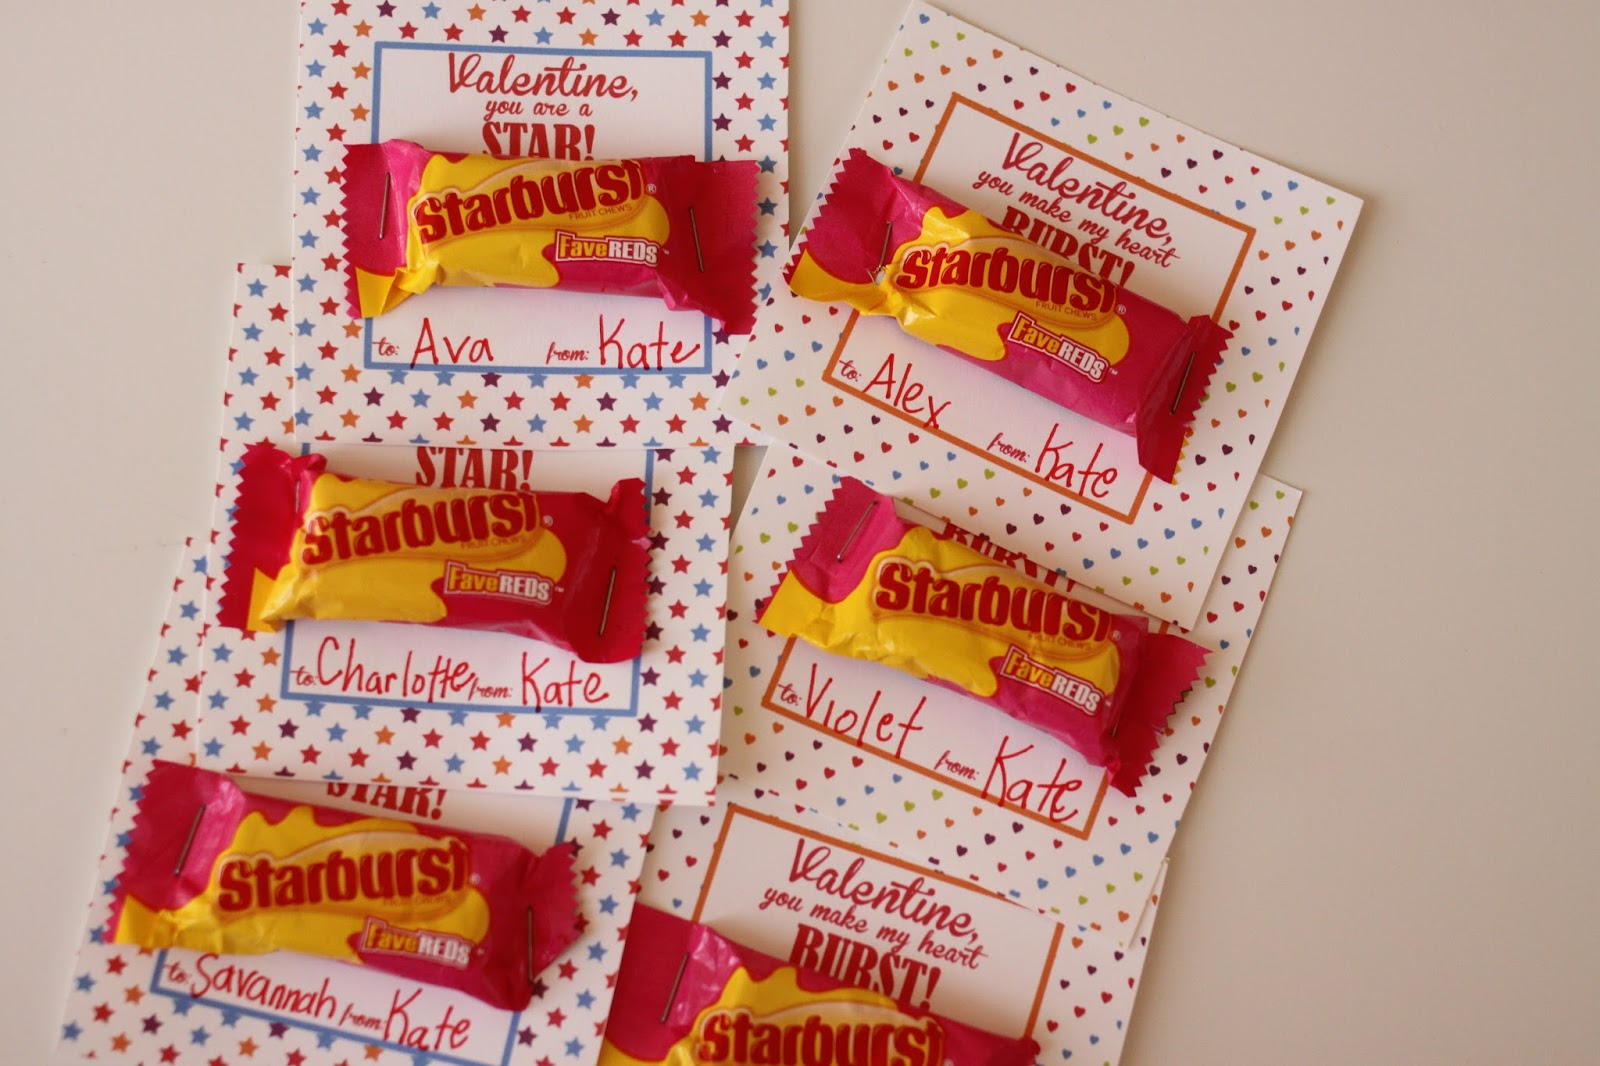 picture about Starburst Valentine Printable identified as The Larson Lingo: Starburst Valentine Strategies No cost Printable